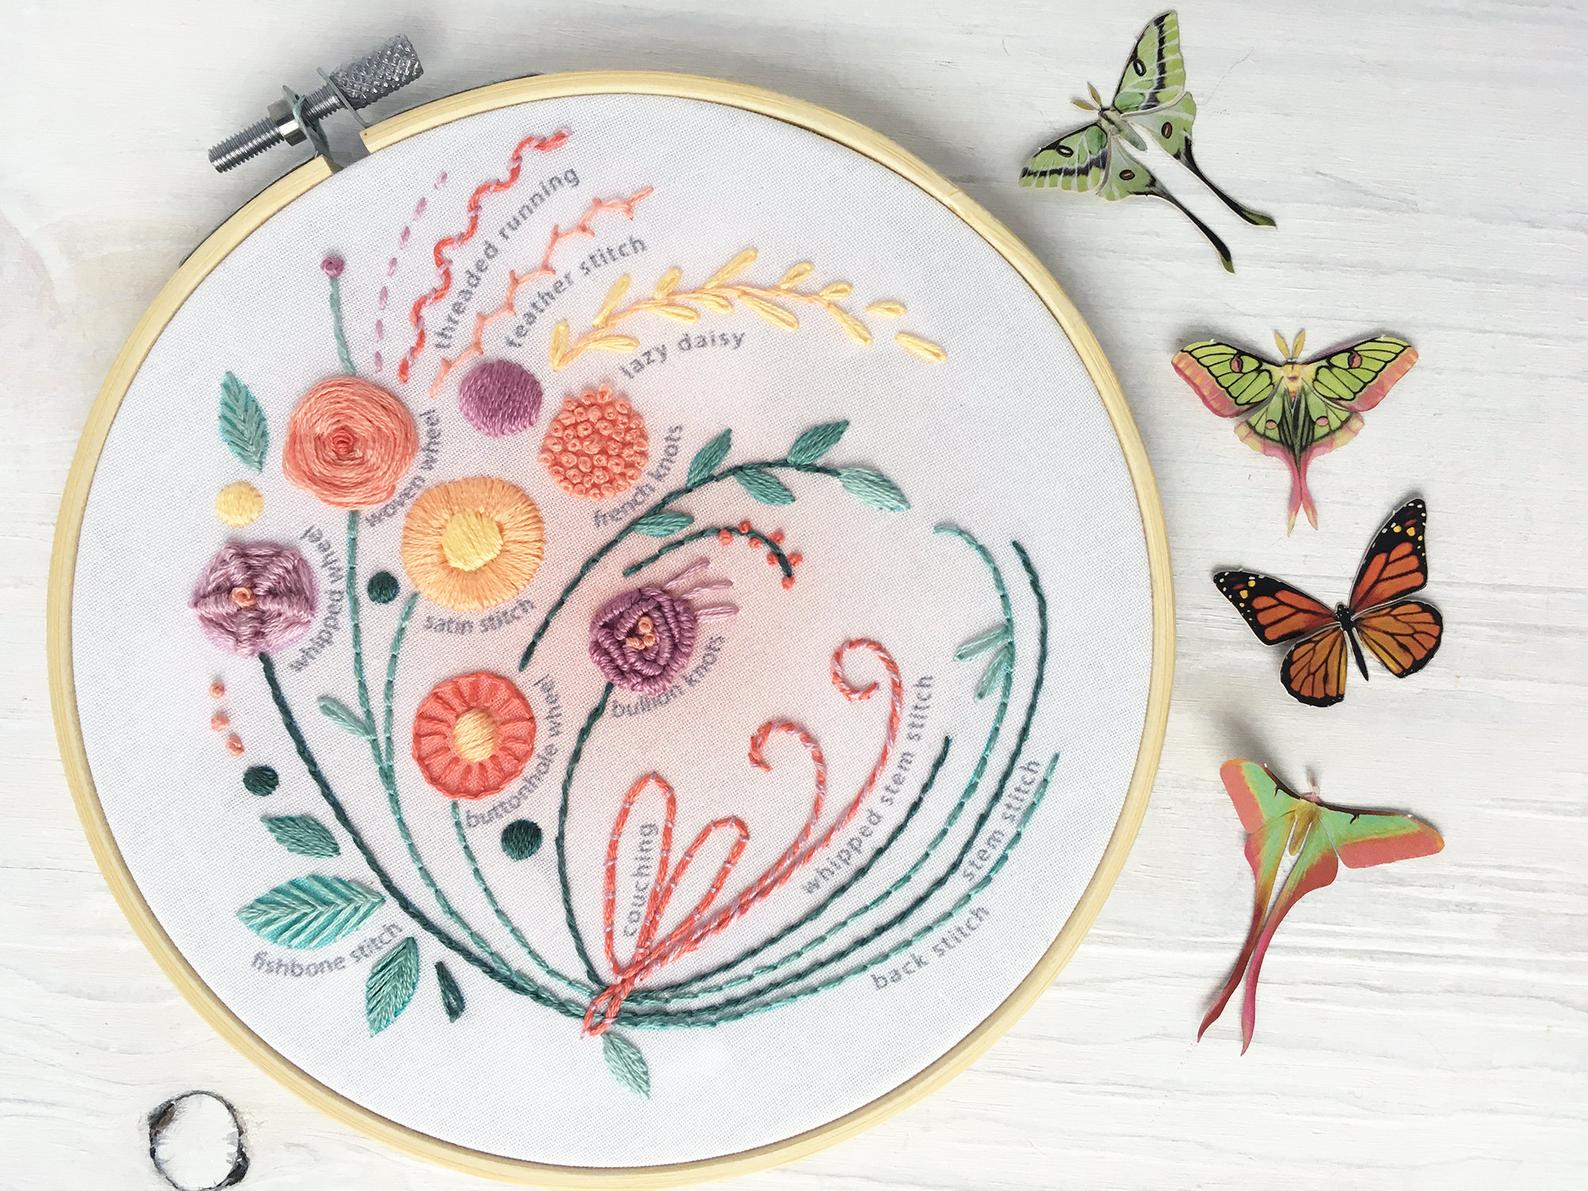 floral stitch sampler pattern